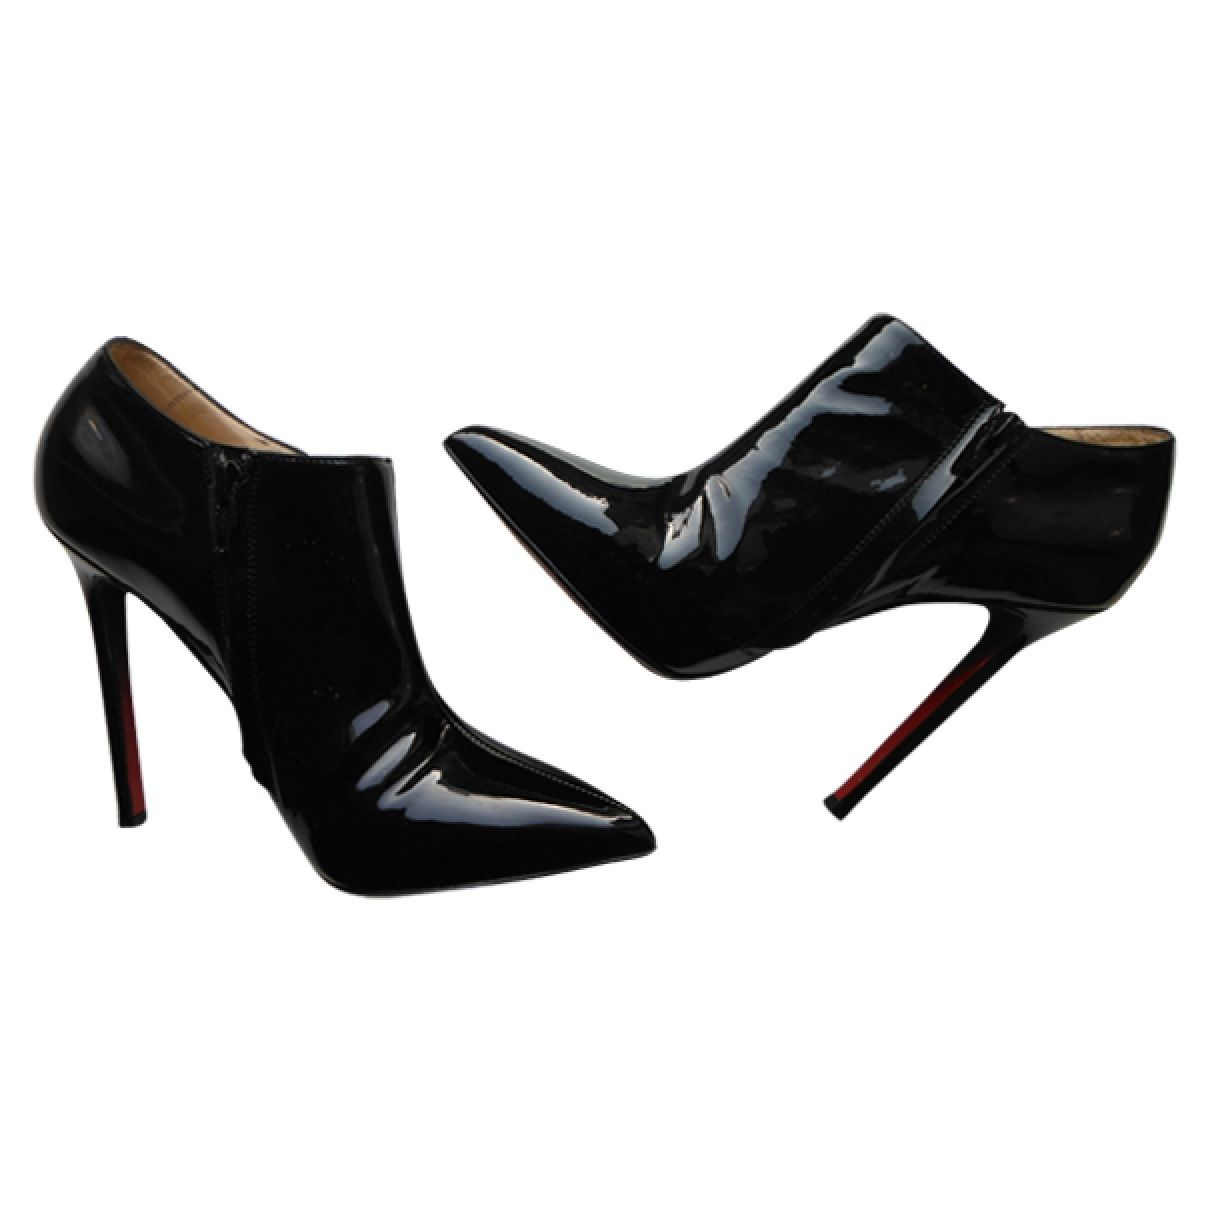 4133ca8fec5 Buy your black patent leather ankle boots CHRISTIAN LOUBOUTIN on Vestiaire  Collective